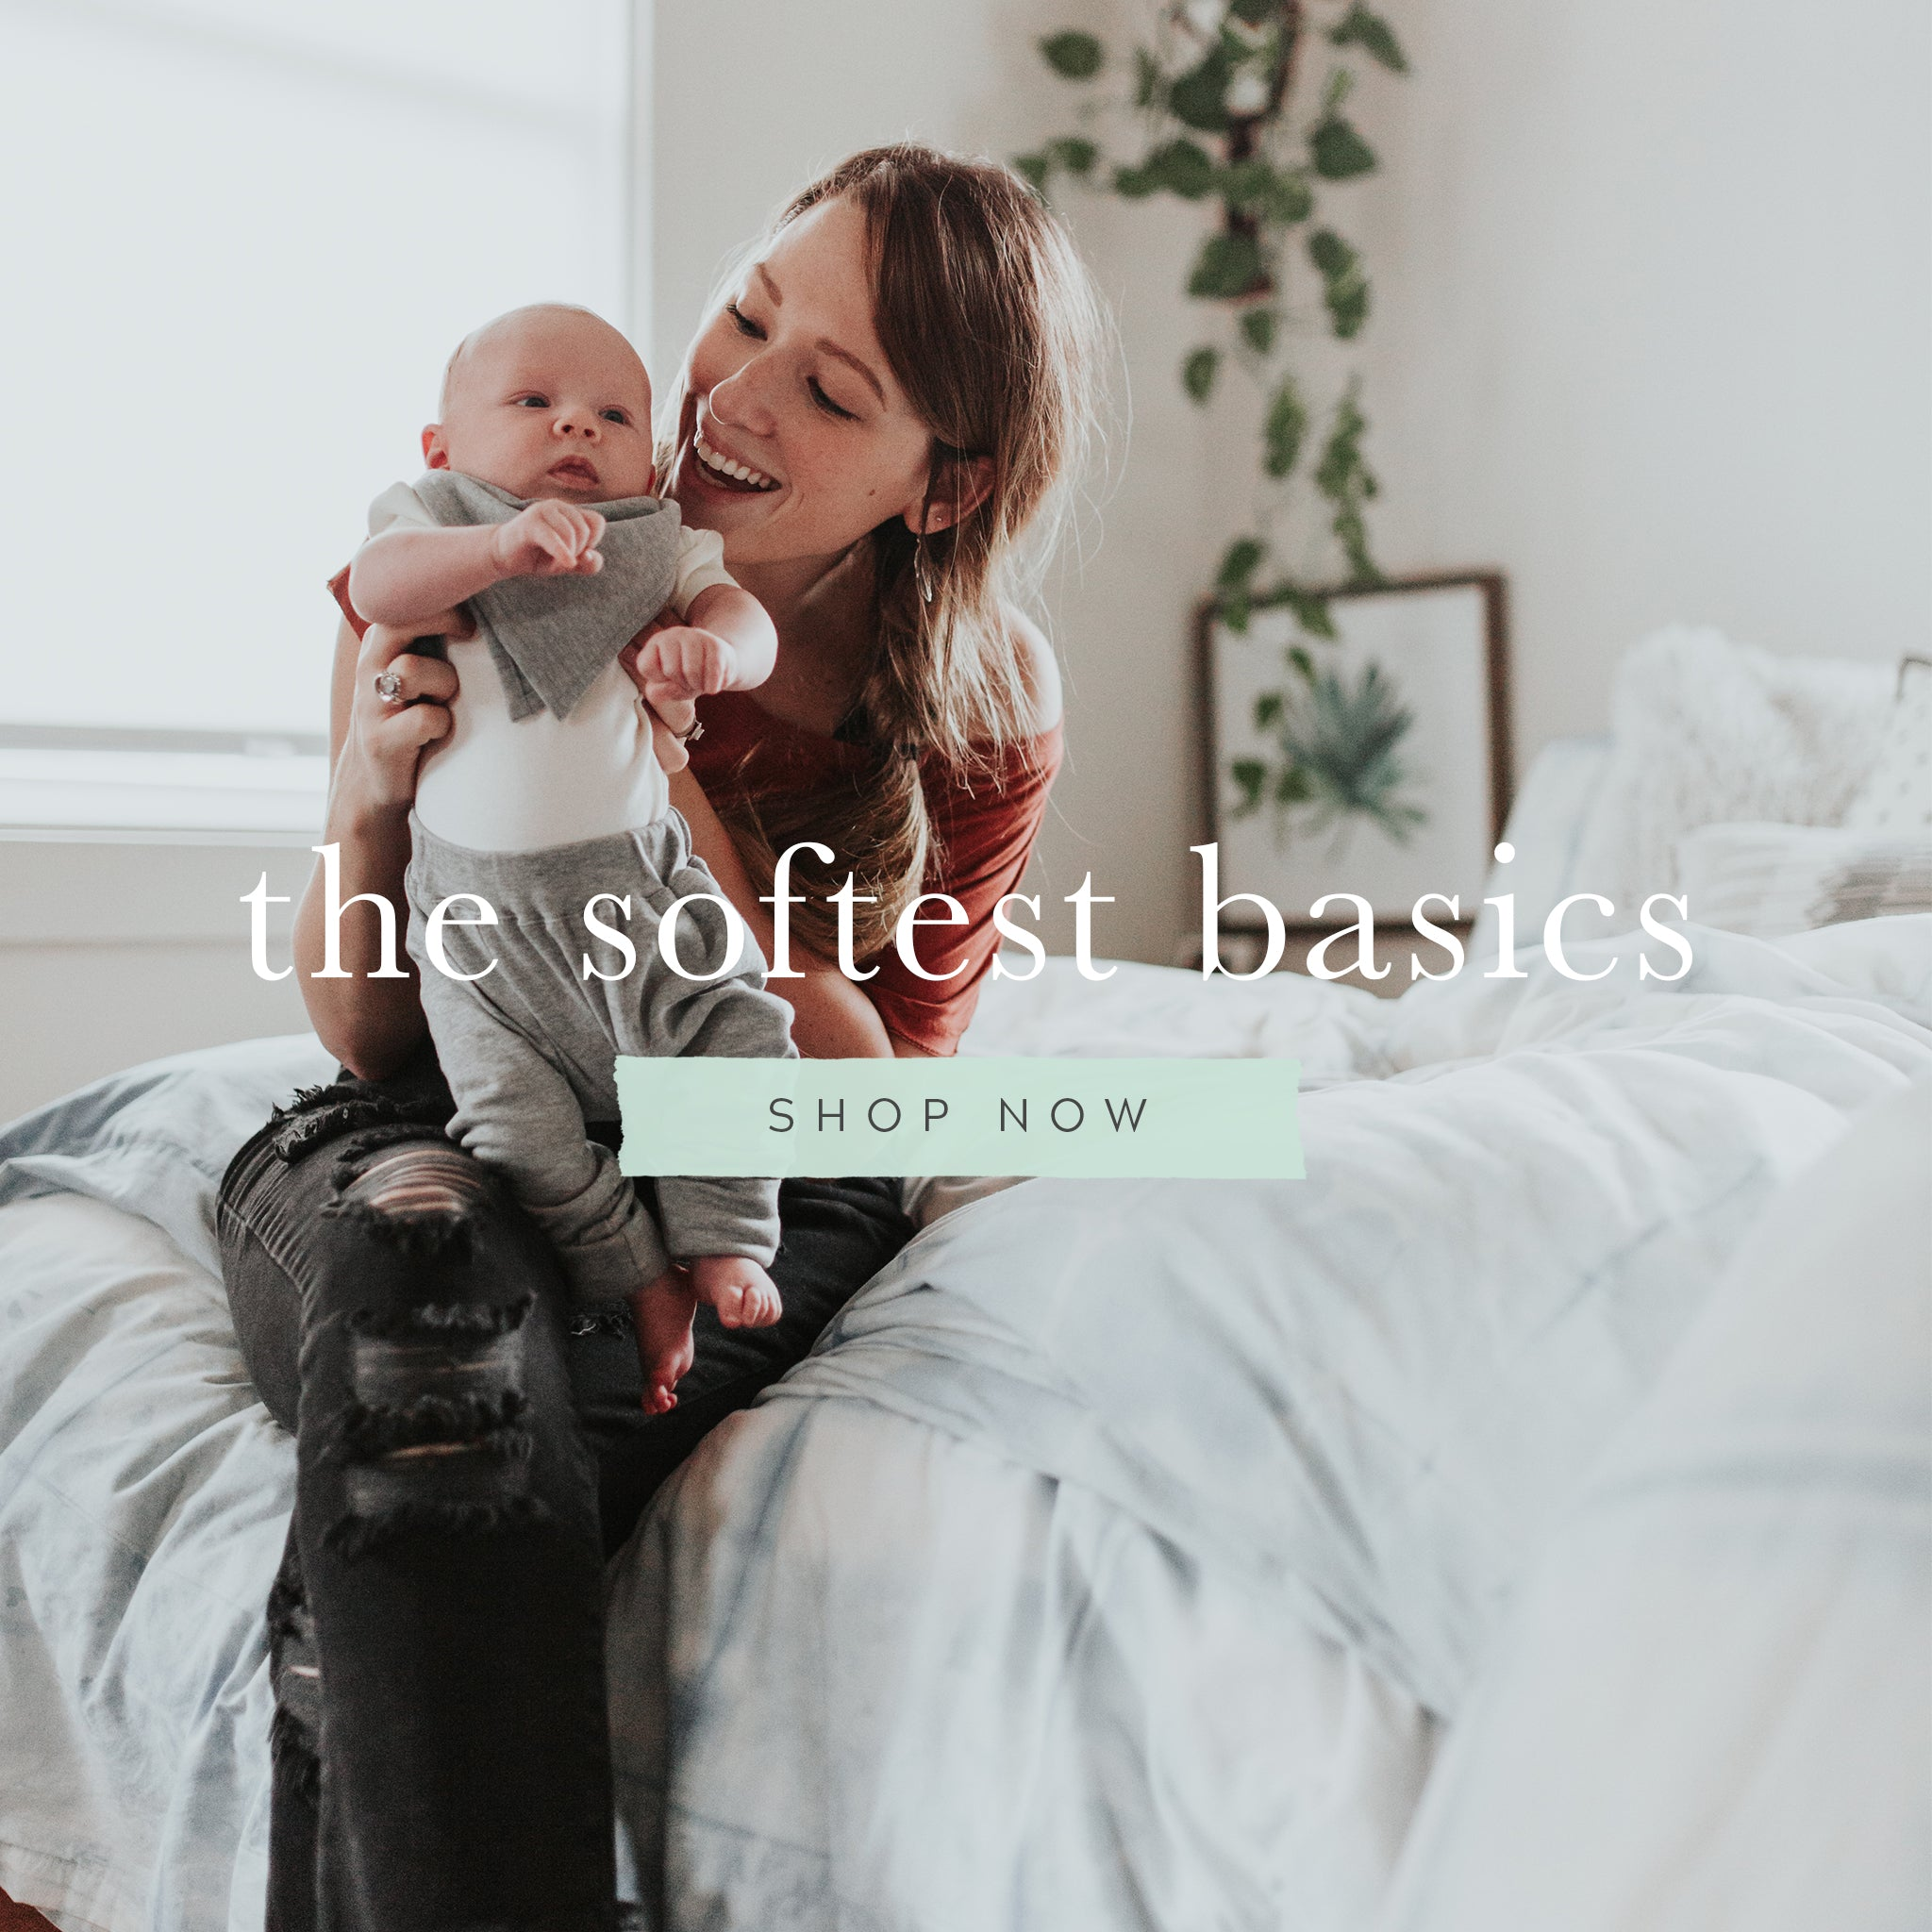 Organic Baby Clothes & Toys | Finn + Emma Official Site